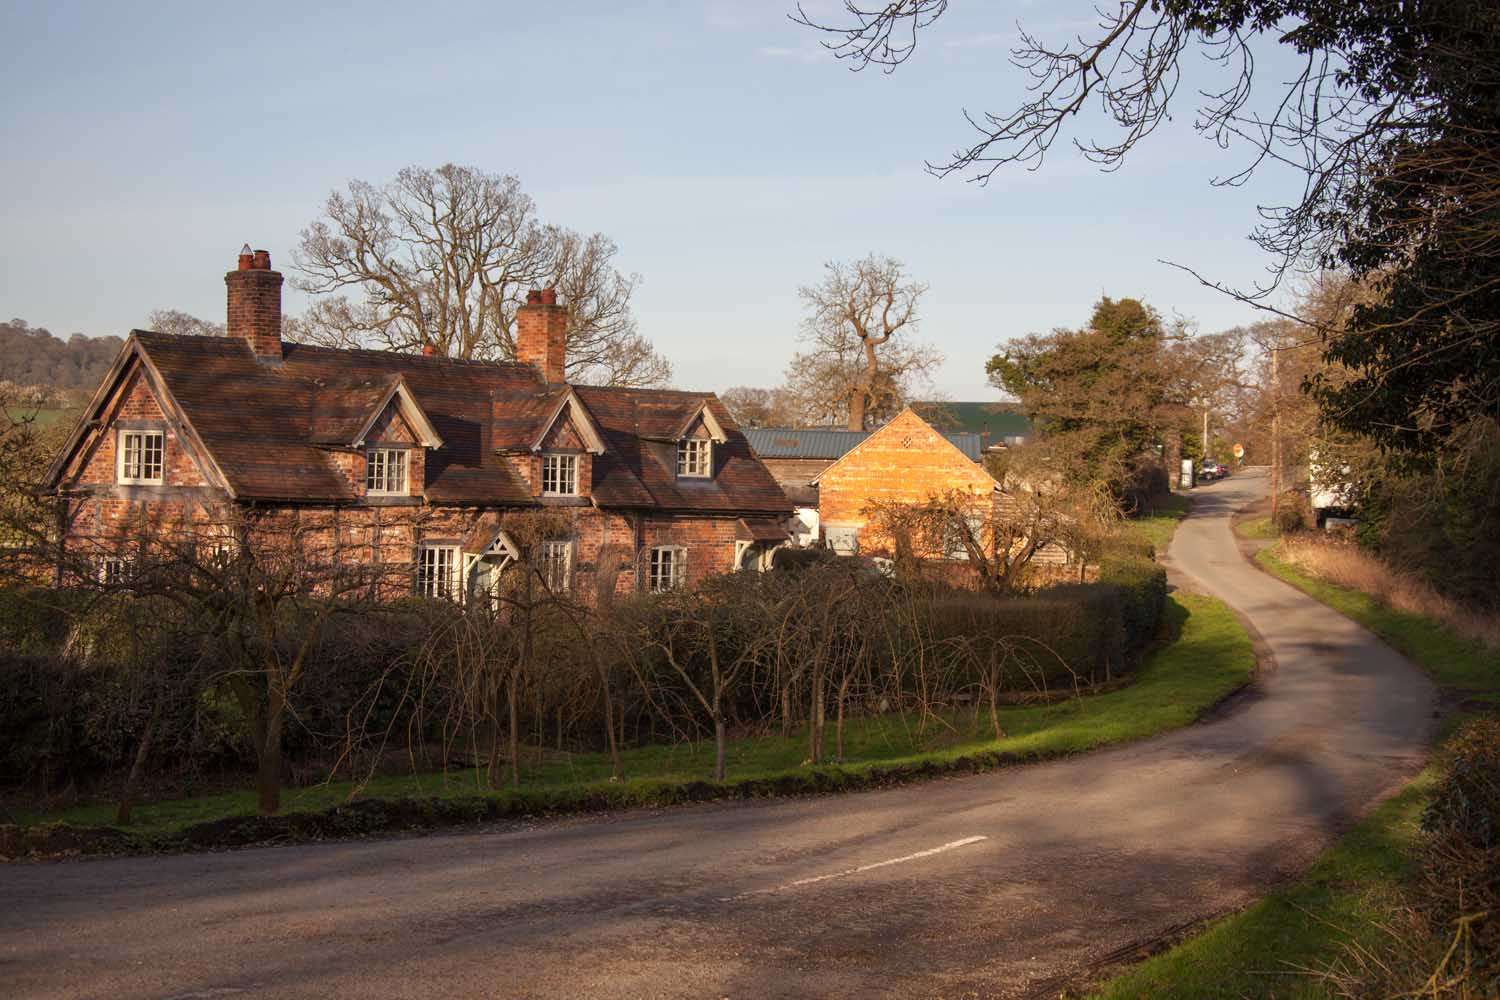 Picturesque view of a quiet rural lane at Cheshire's Edge Green.